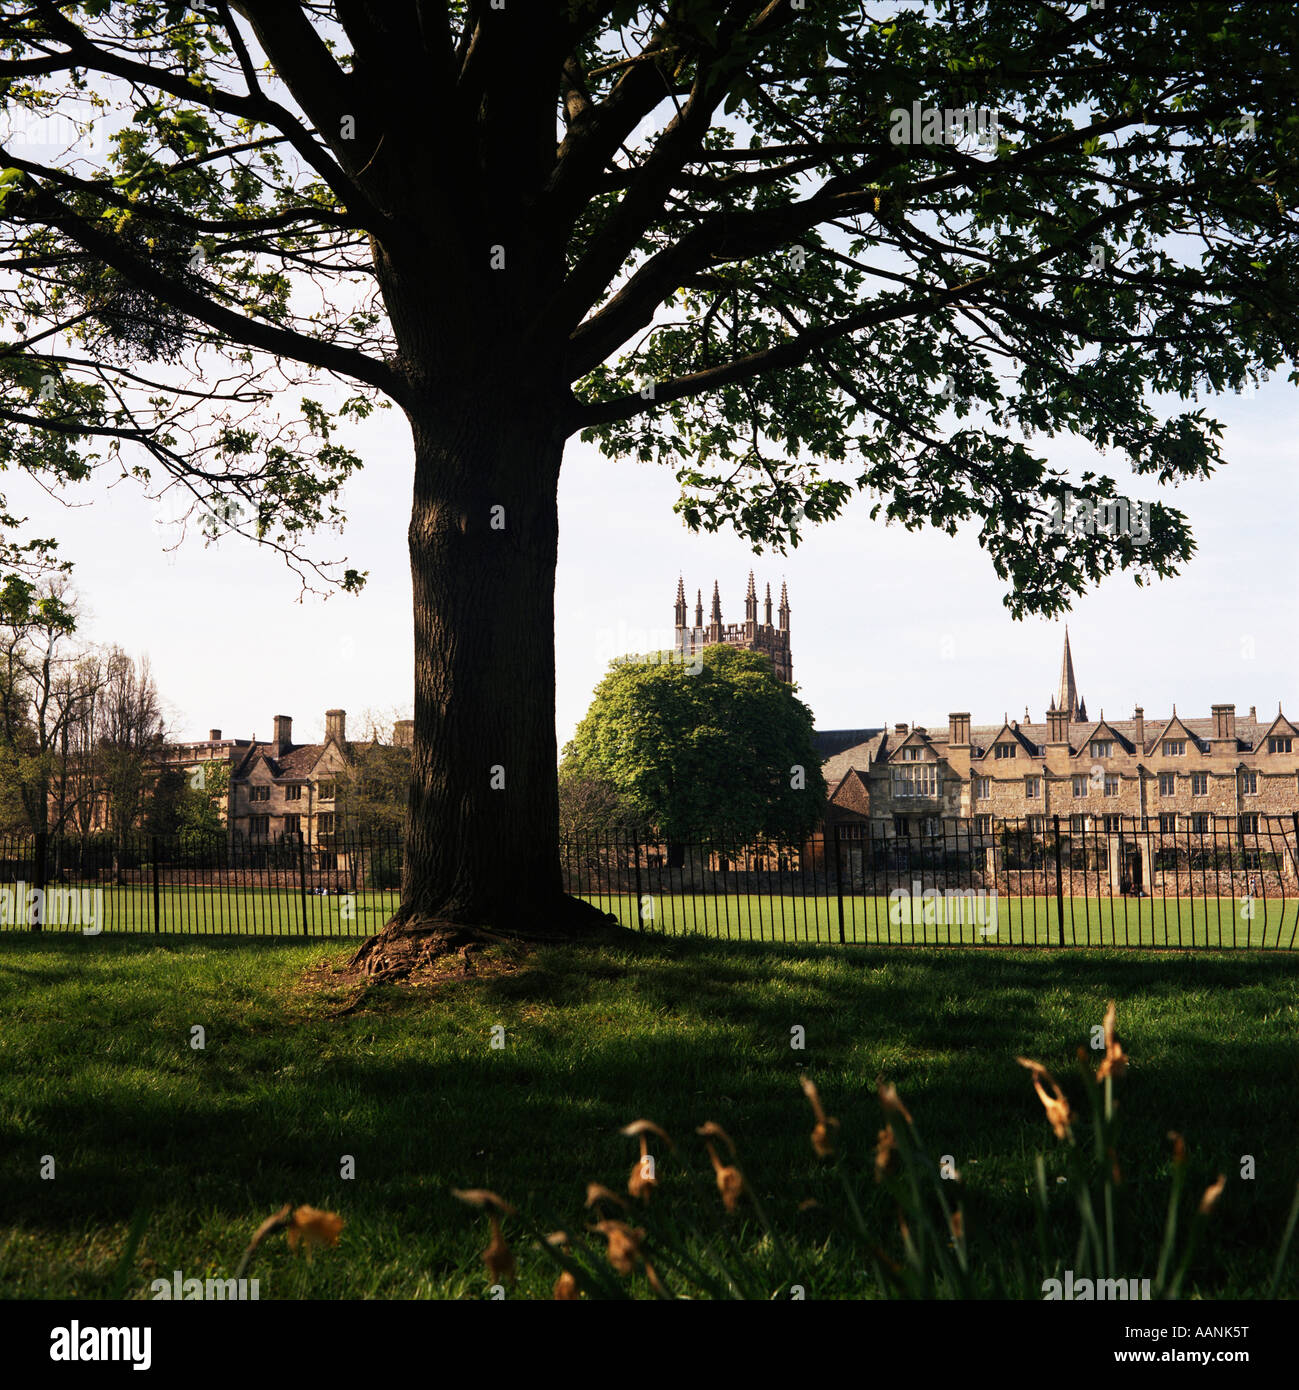 View across Merton Playing Field towards Corpus Christi left and Merton College right Oxford University April 2007 - Stock Image